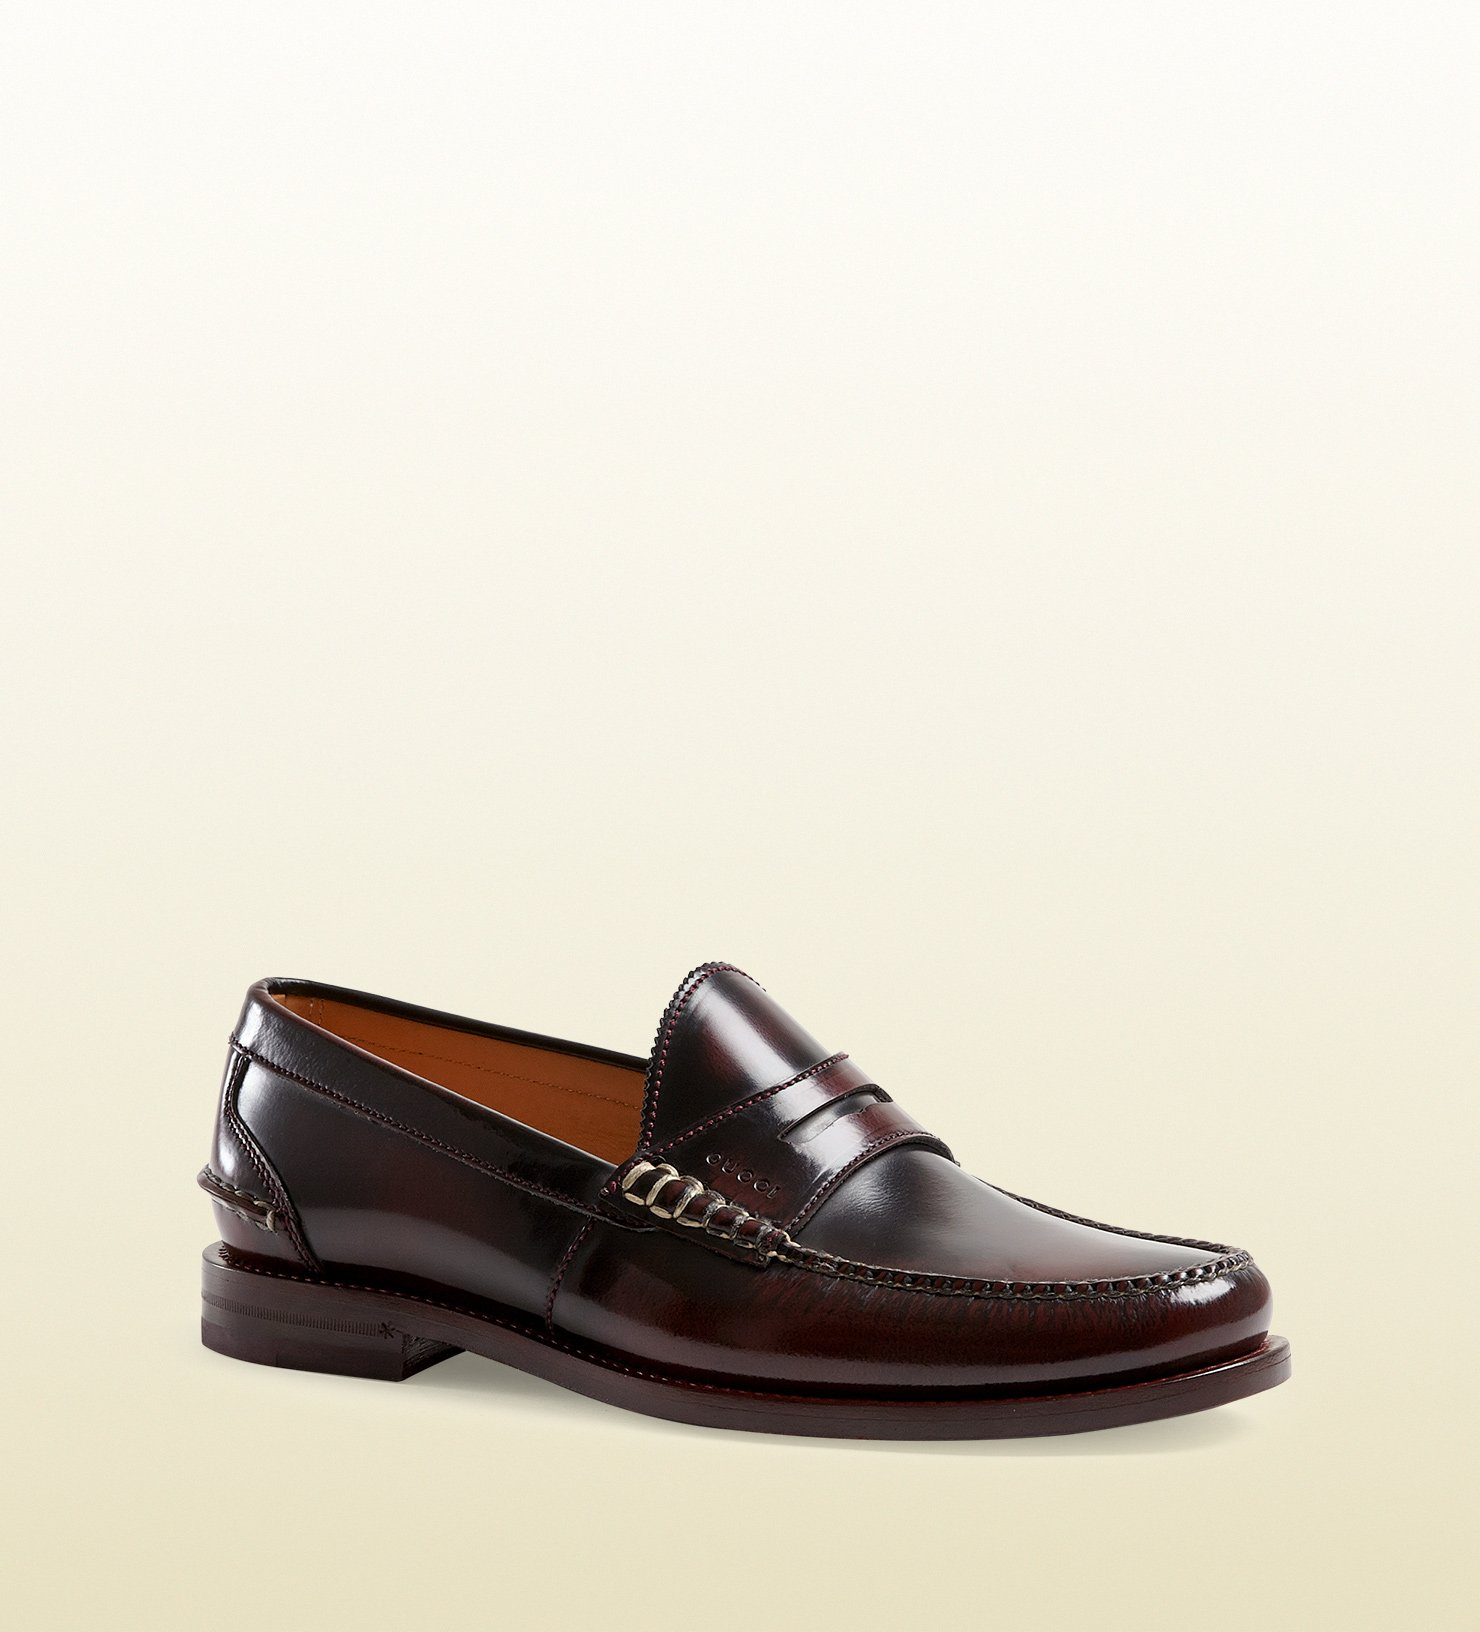 Lyst - Gucci Polished Leather Penny Loafer in Purple for Men